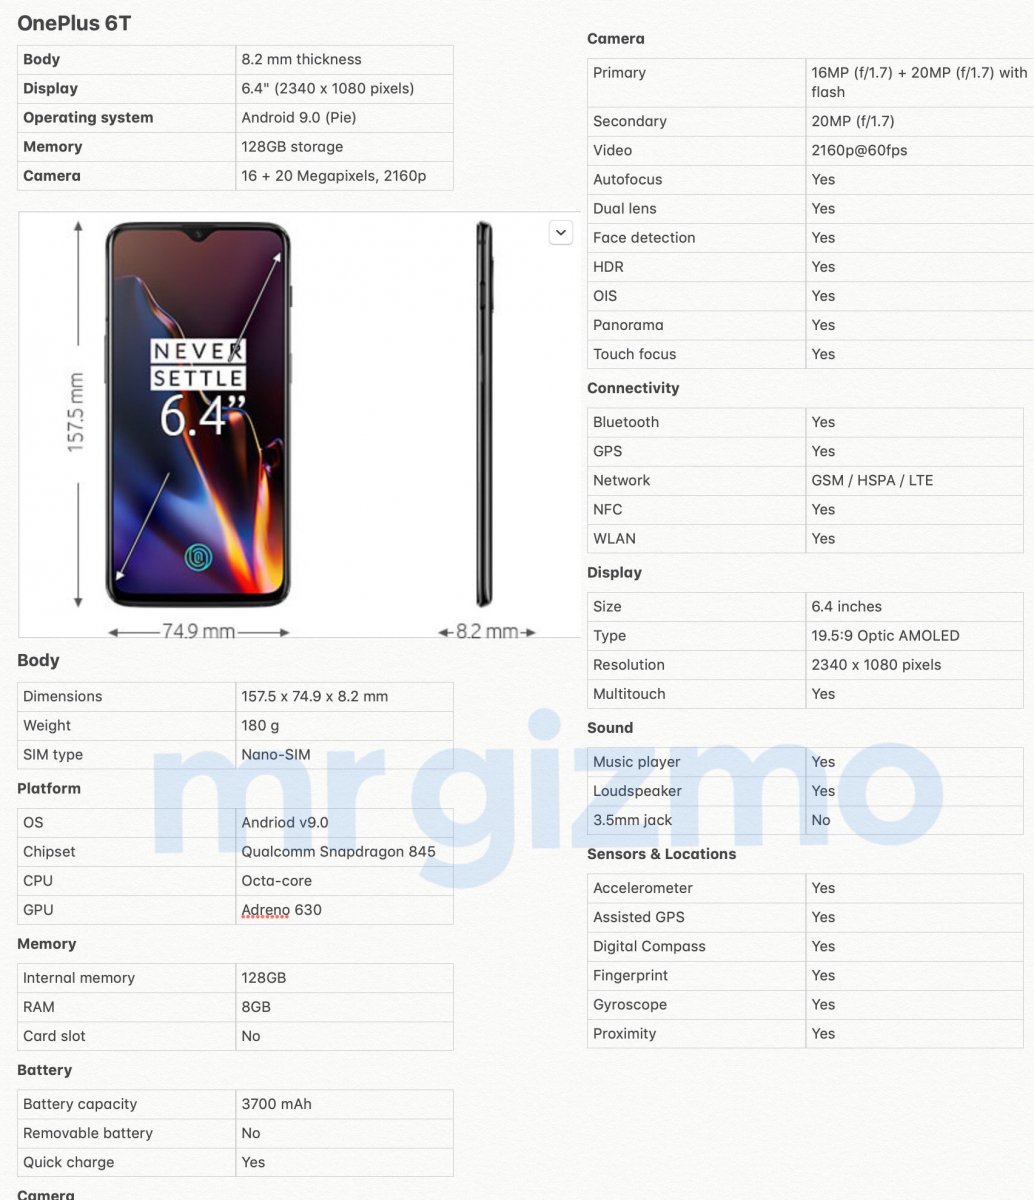 OnePlus 6T specificaties